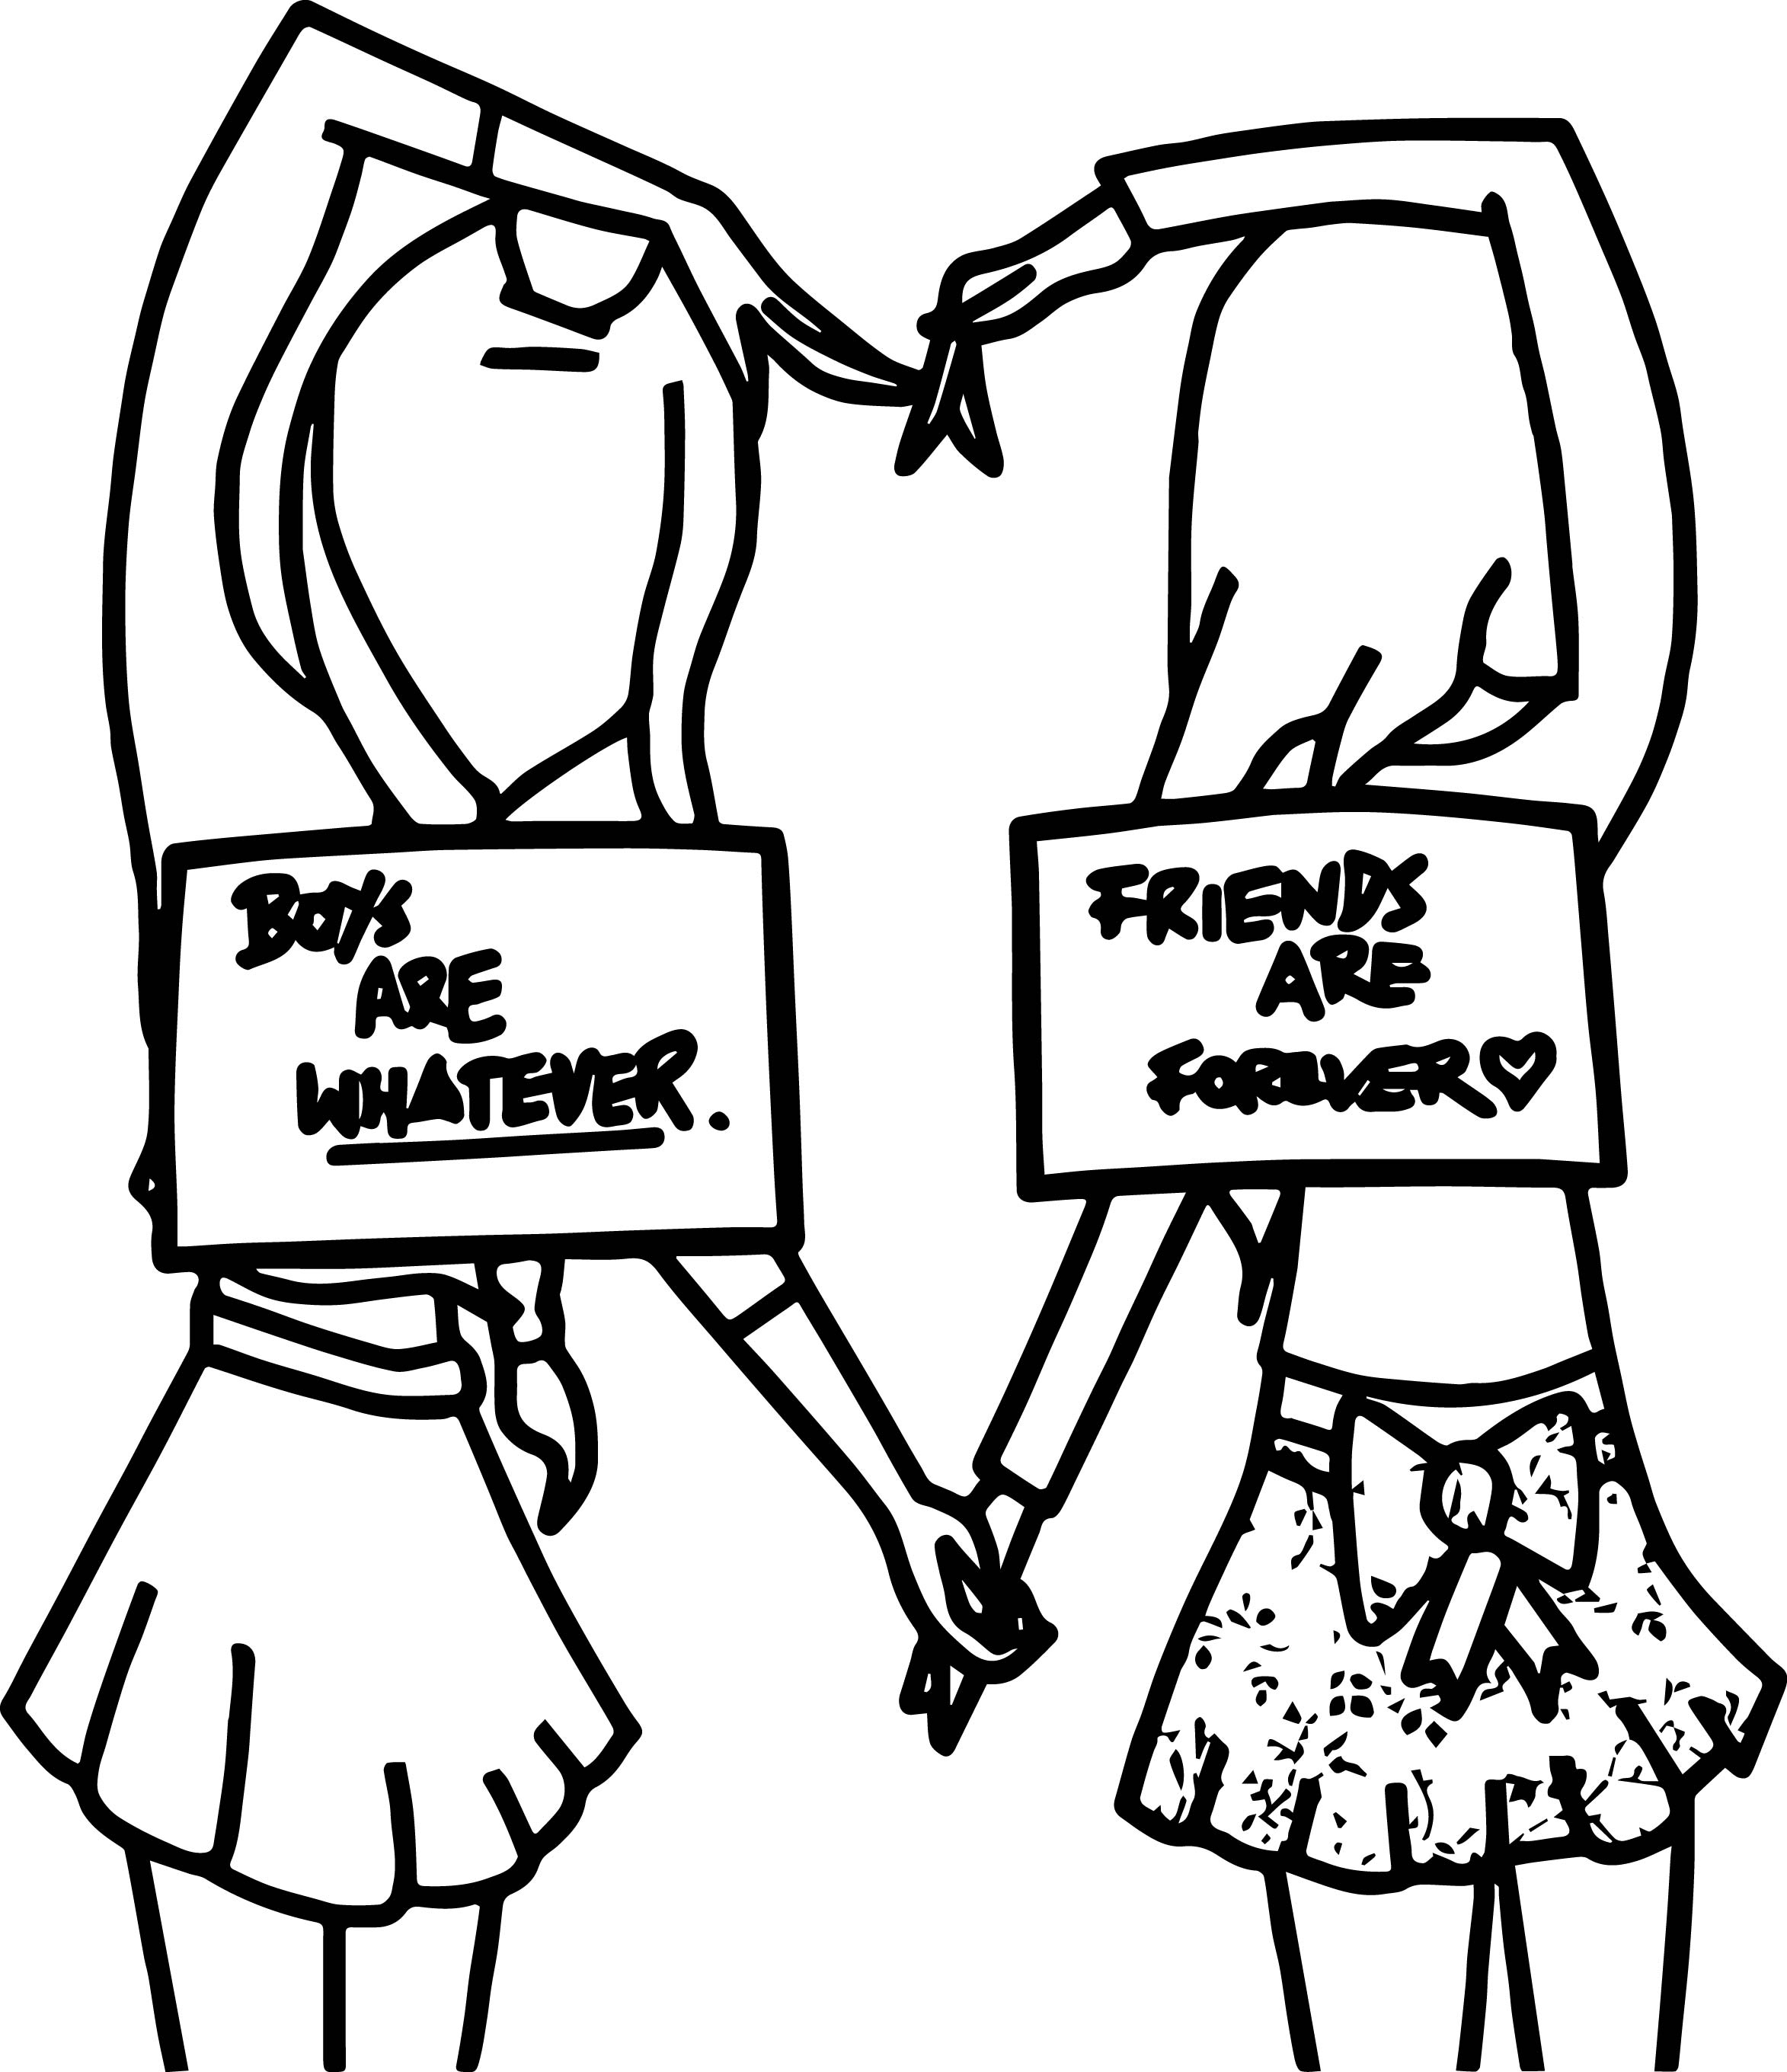 Free Printable Coloring Pages For Teens Latest Tweens Teenagers - Free Printable Coloring Pages For Teens